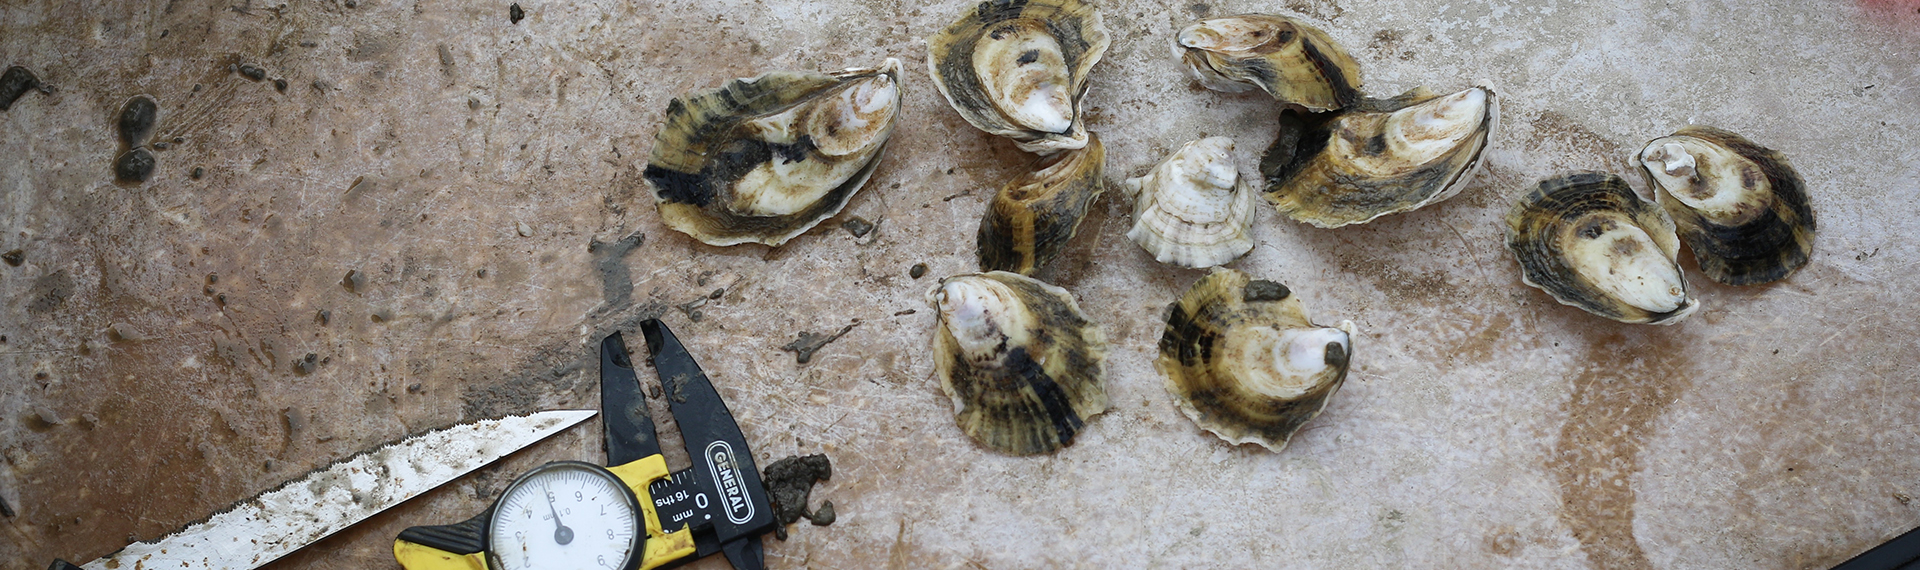 oysterresearch